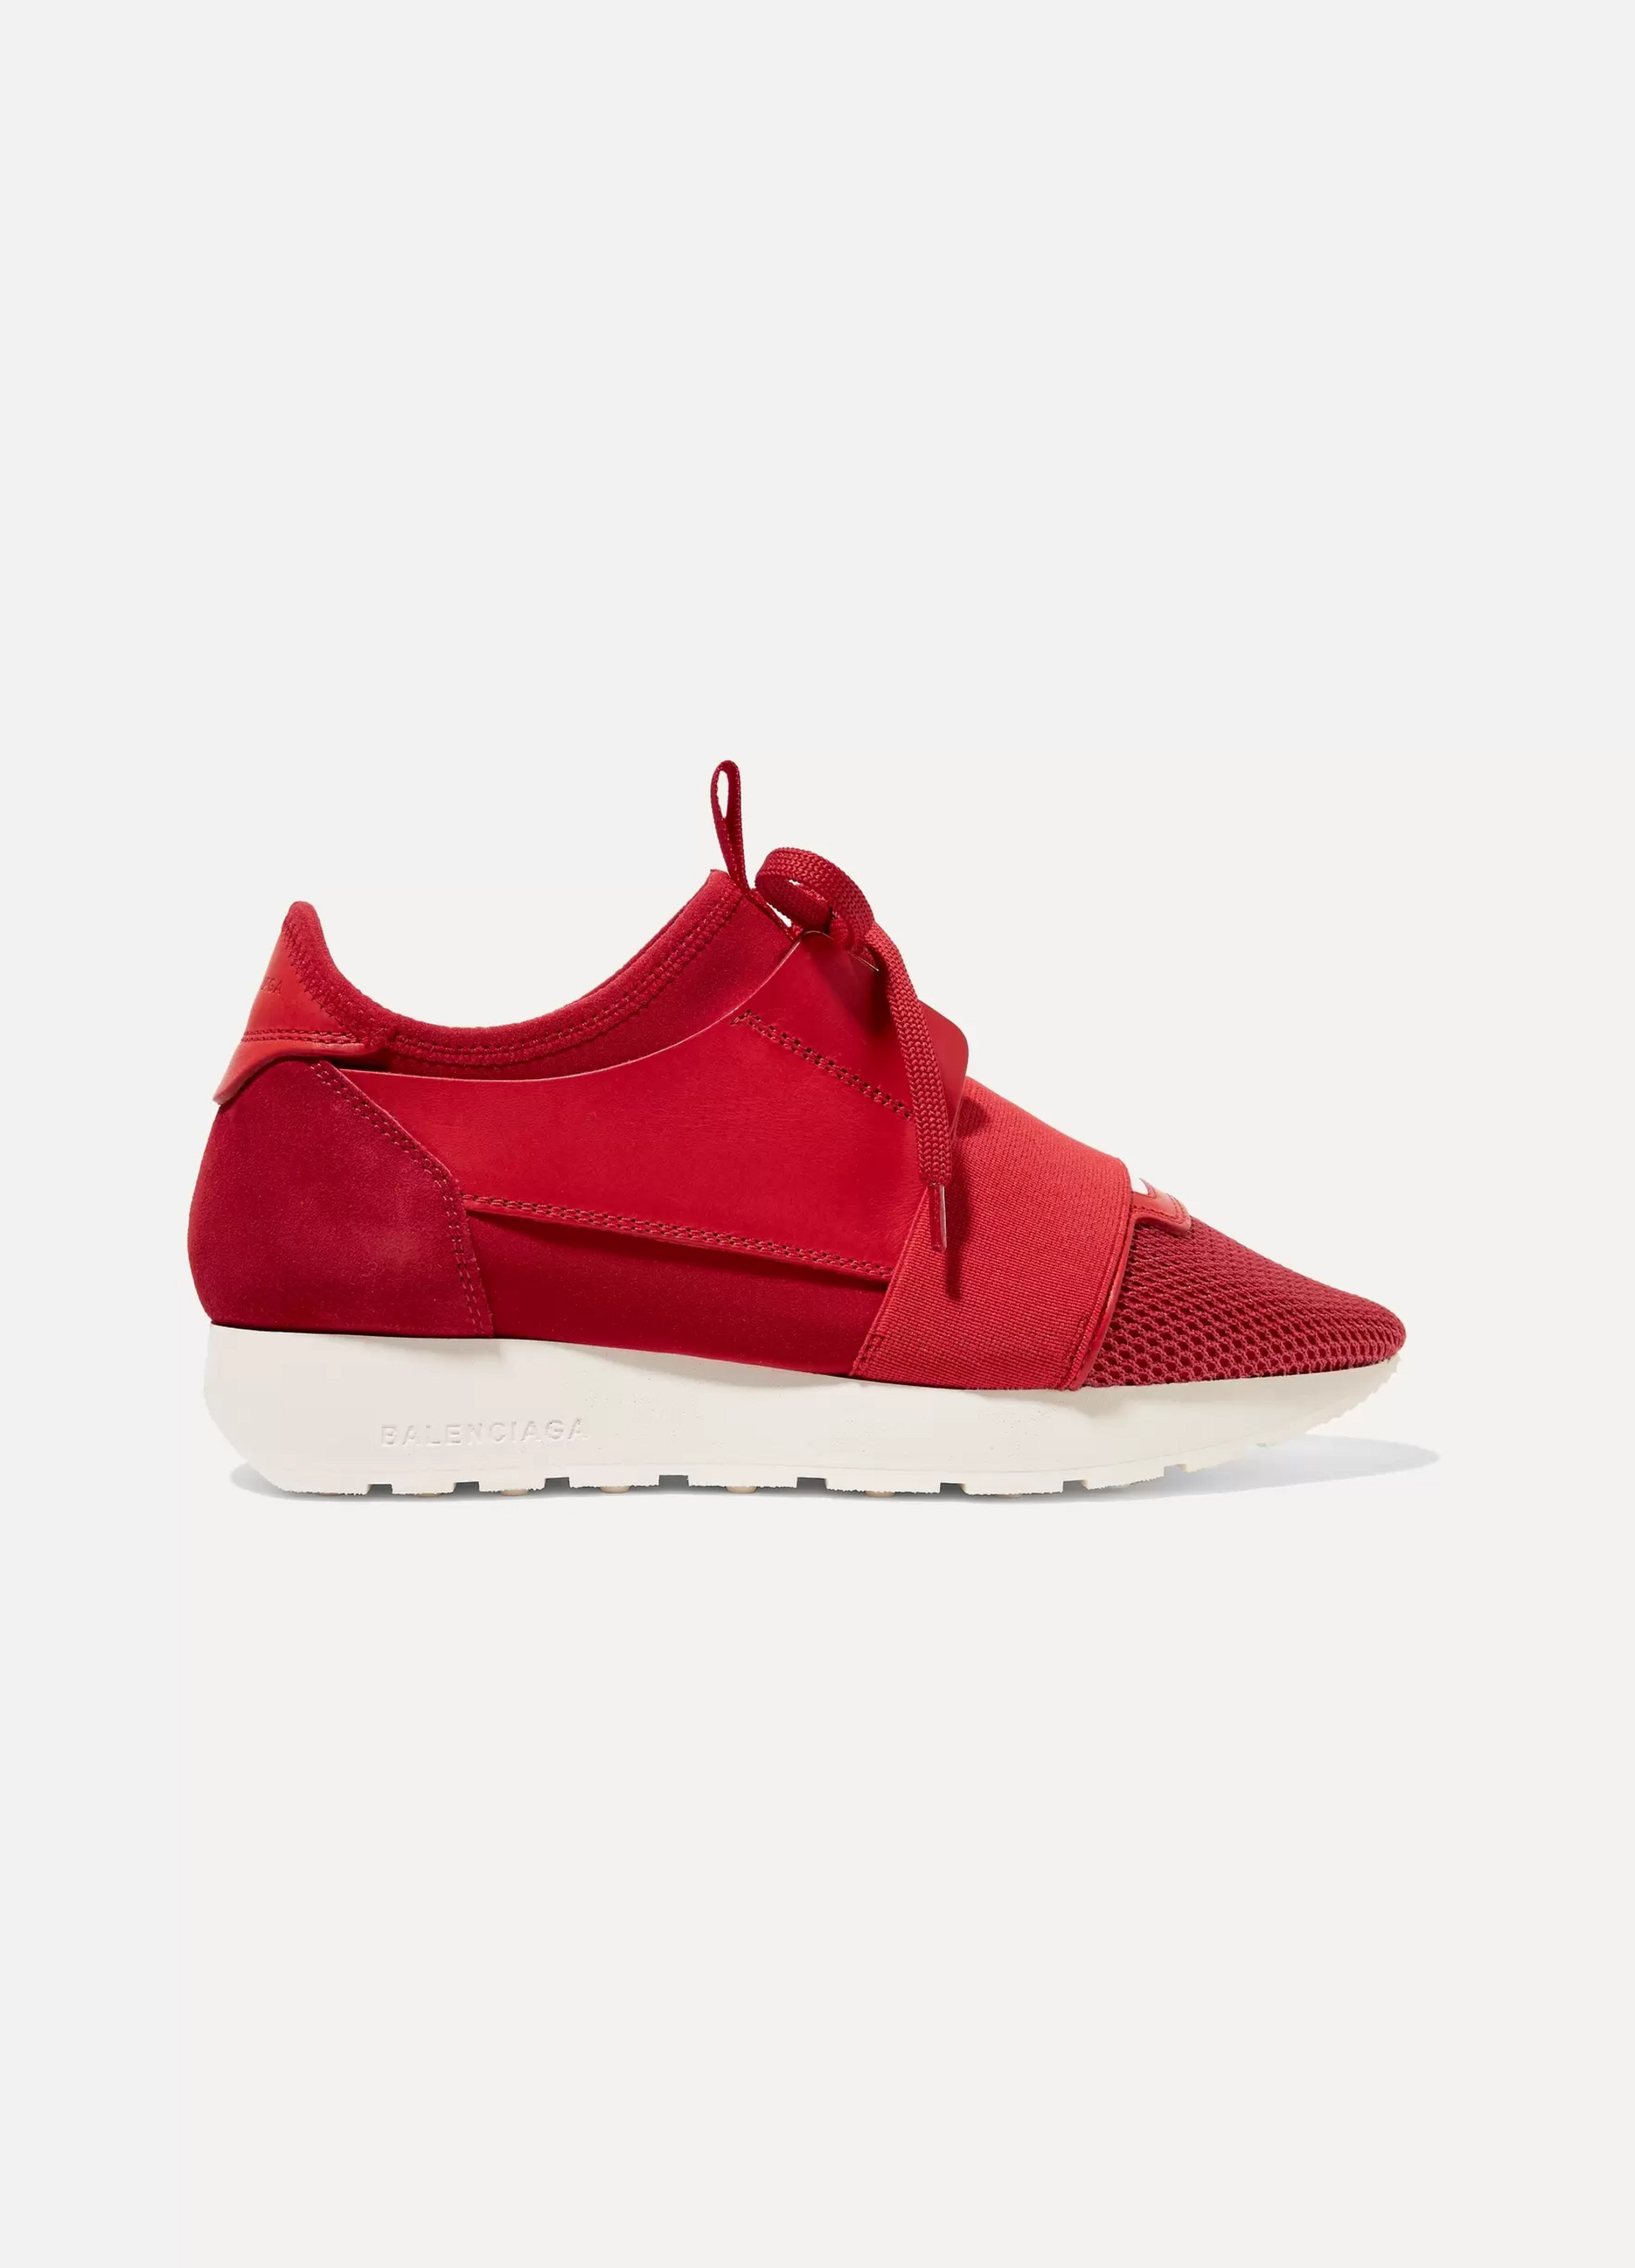 Balenciaga Race Runner leather, mesh, neoprene and suede sneakers